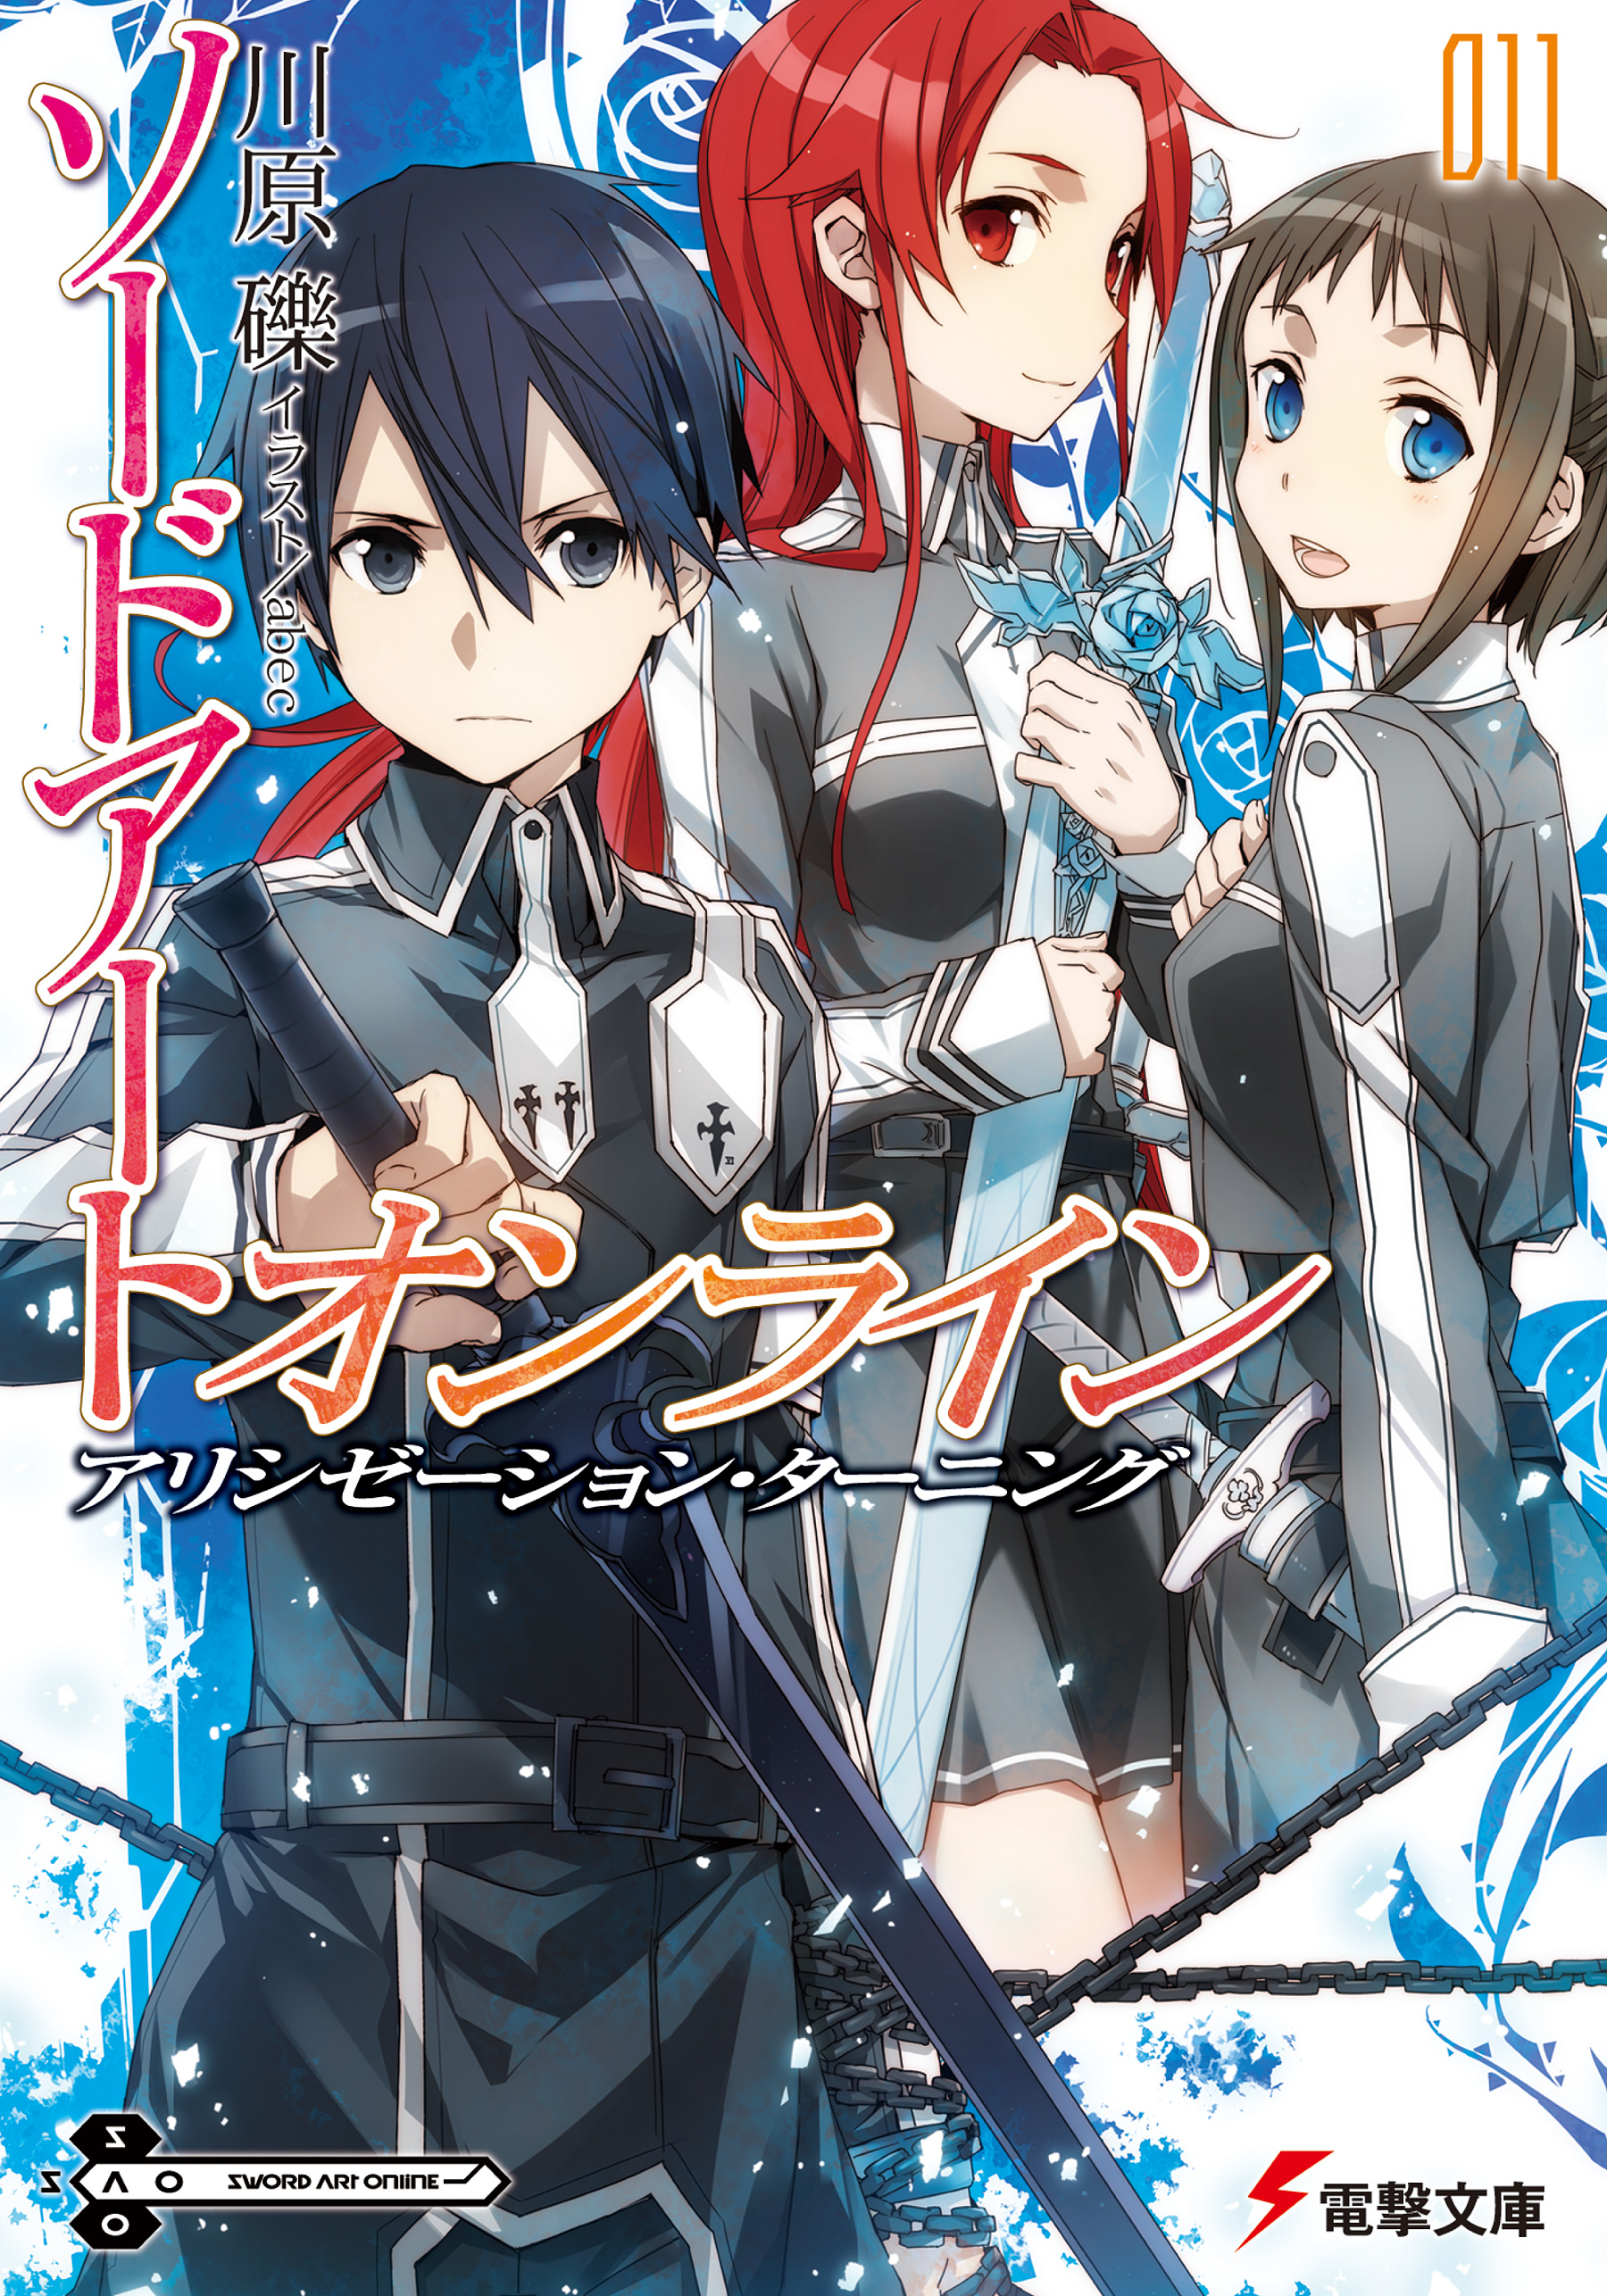 download sword art online alicization episode 9 sub indo